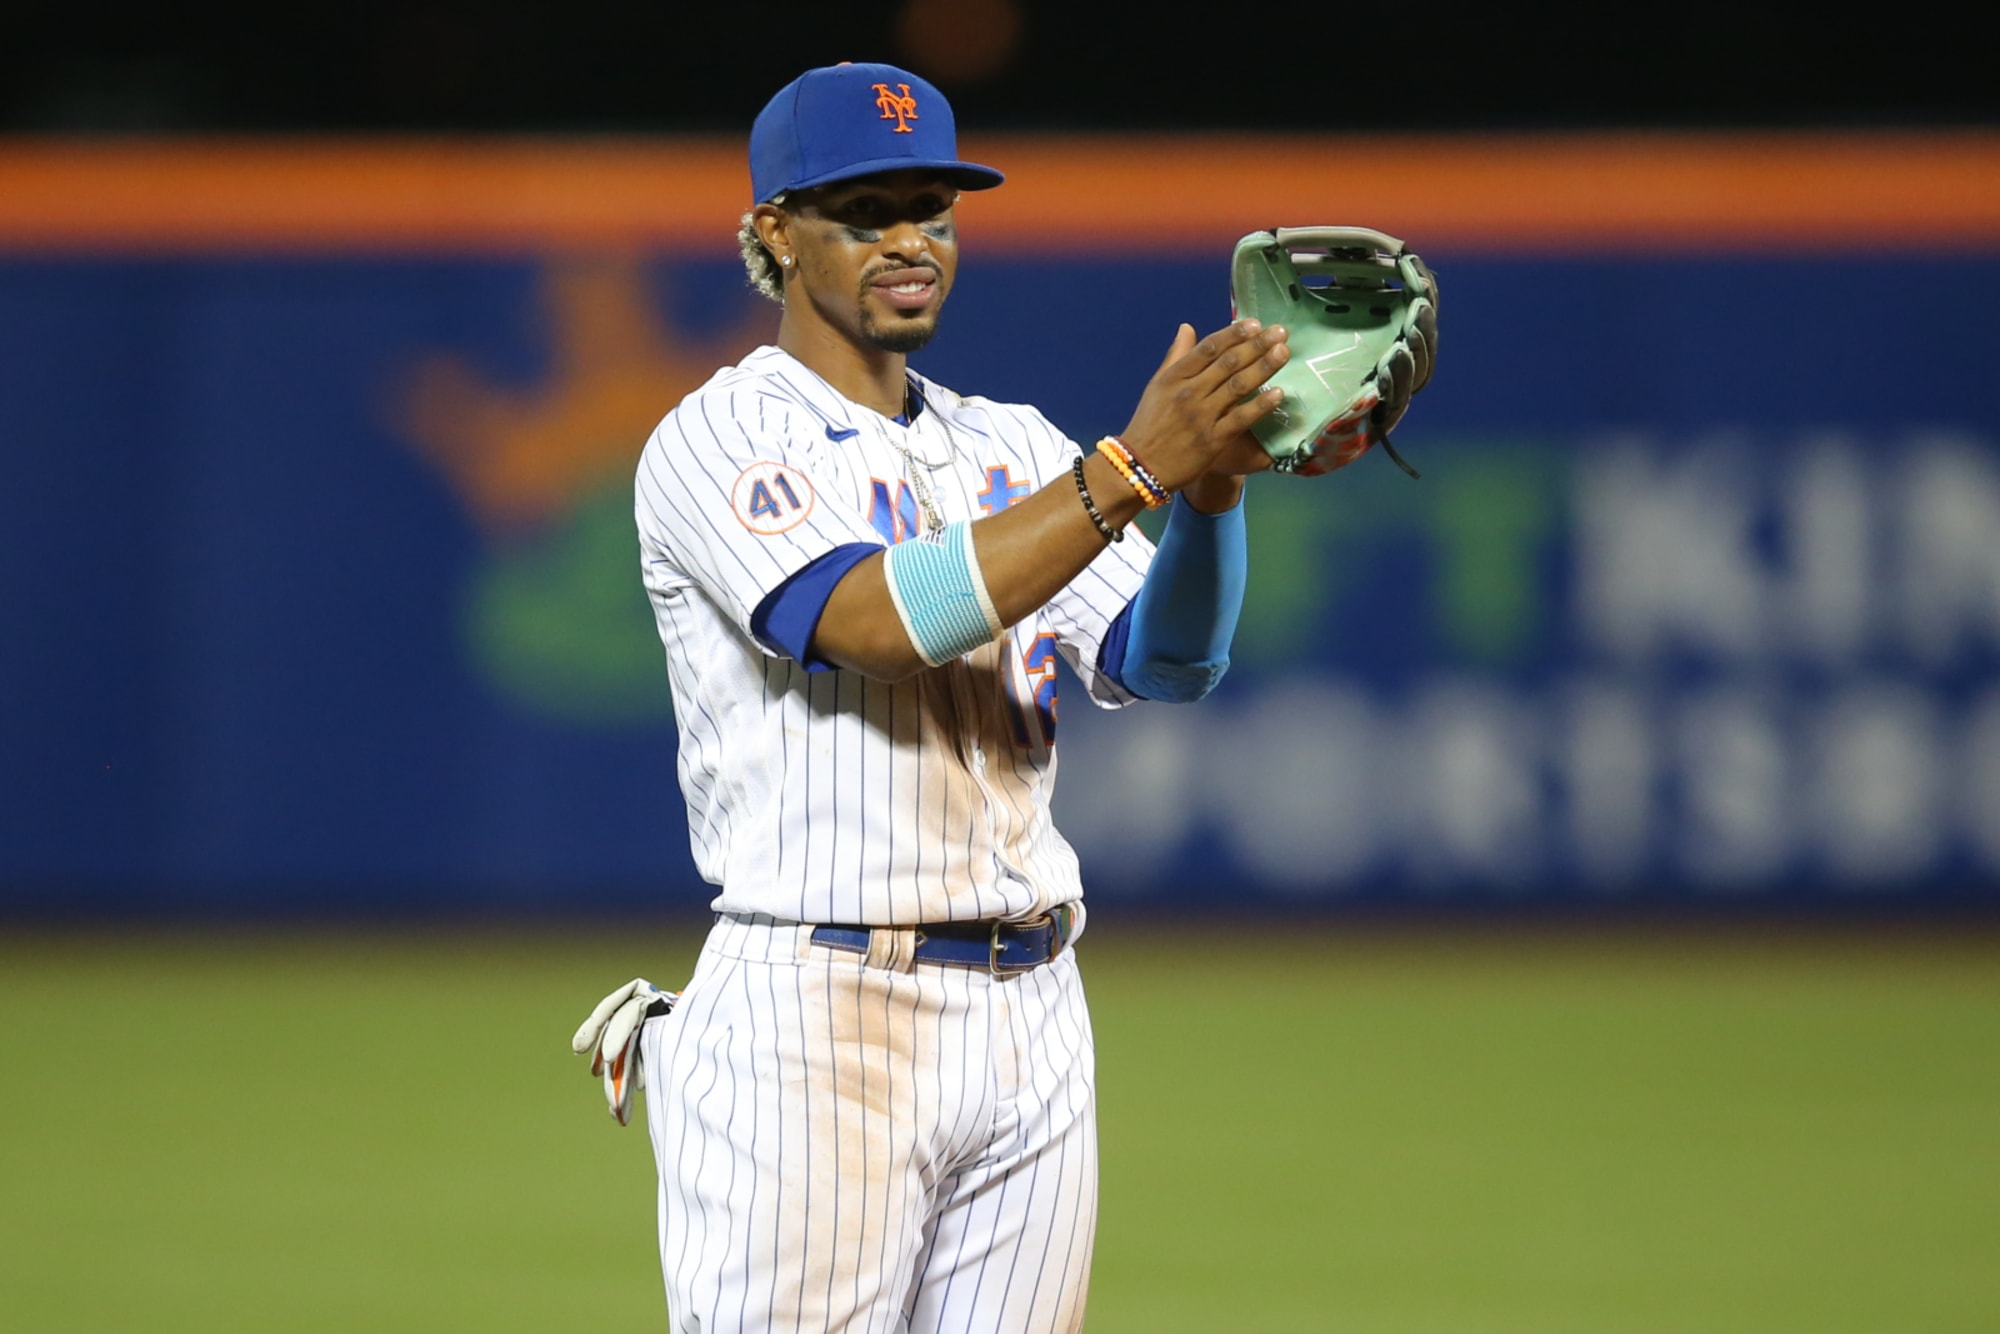 Mets vs. Rockies: Three things we want to see in the three games